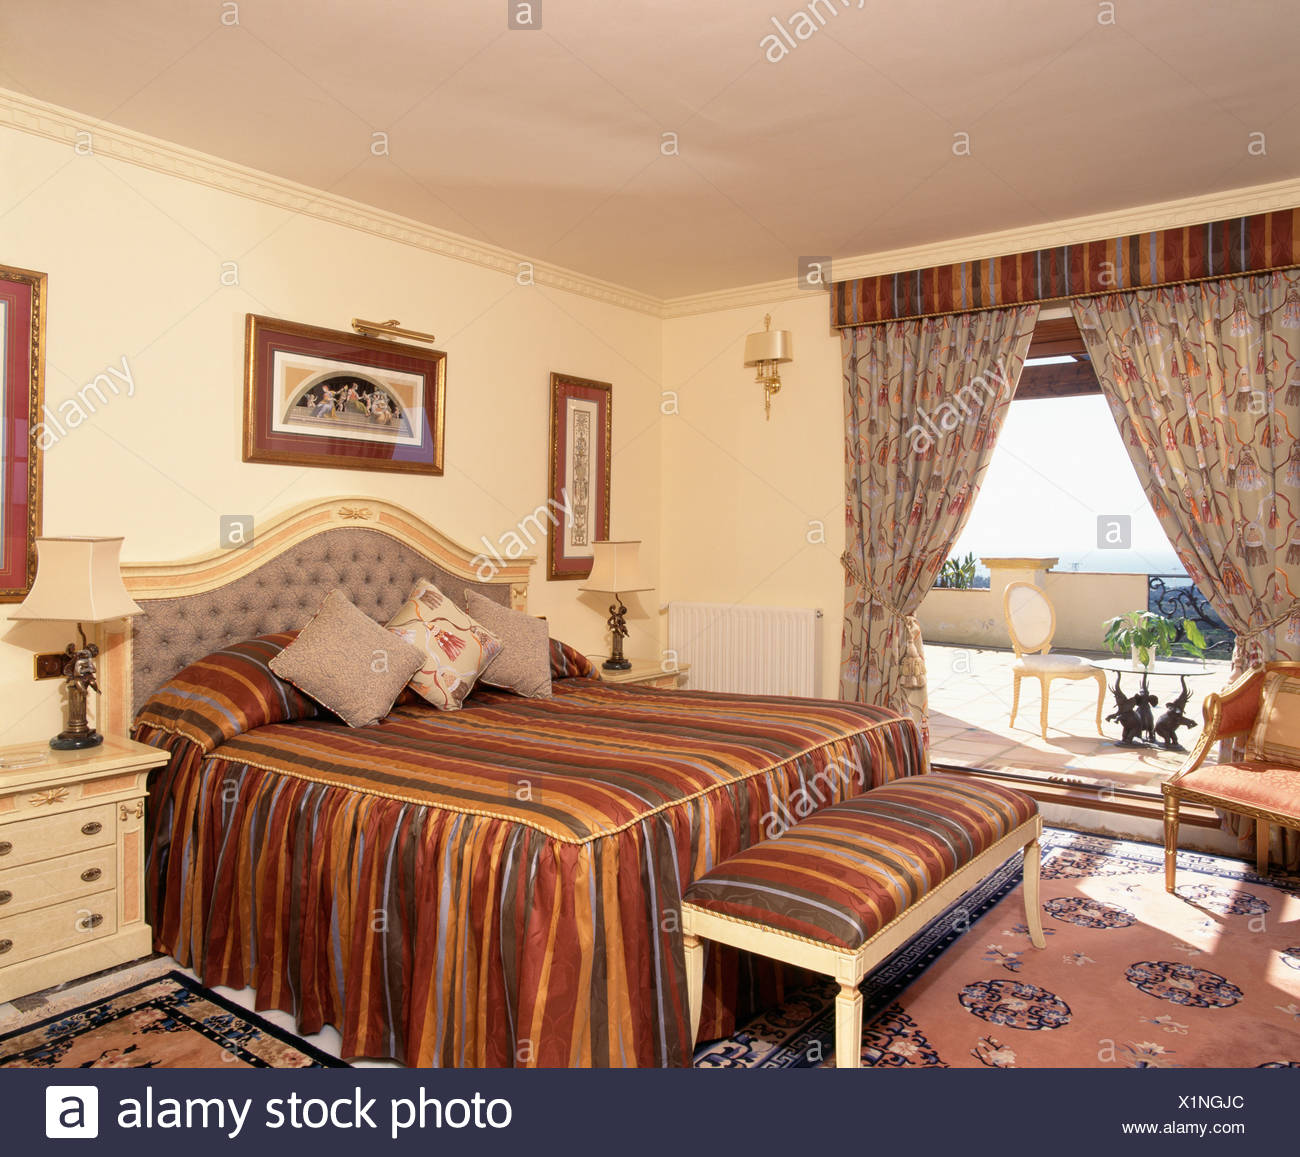 Bed With Multi Colored Striped Bedlinen In Spanish Apartment Bedroom With  Floral Curtains On Patio